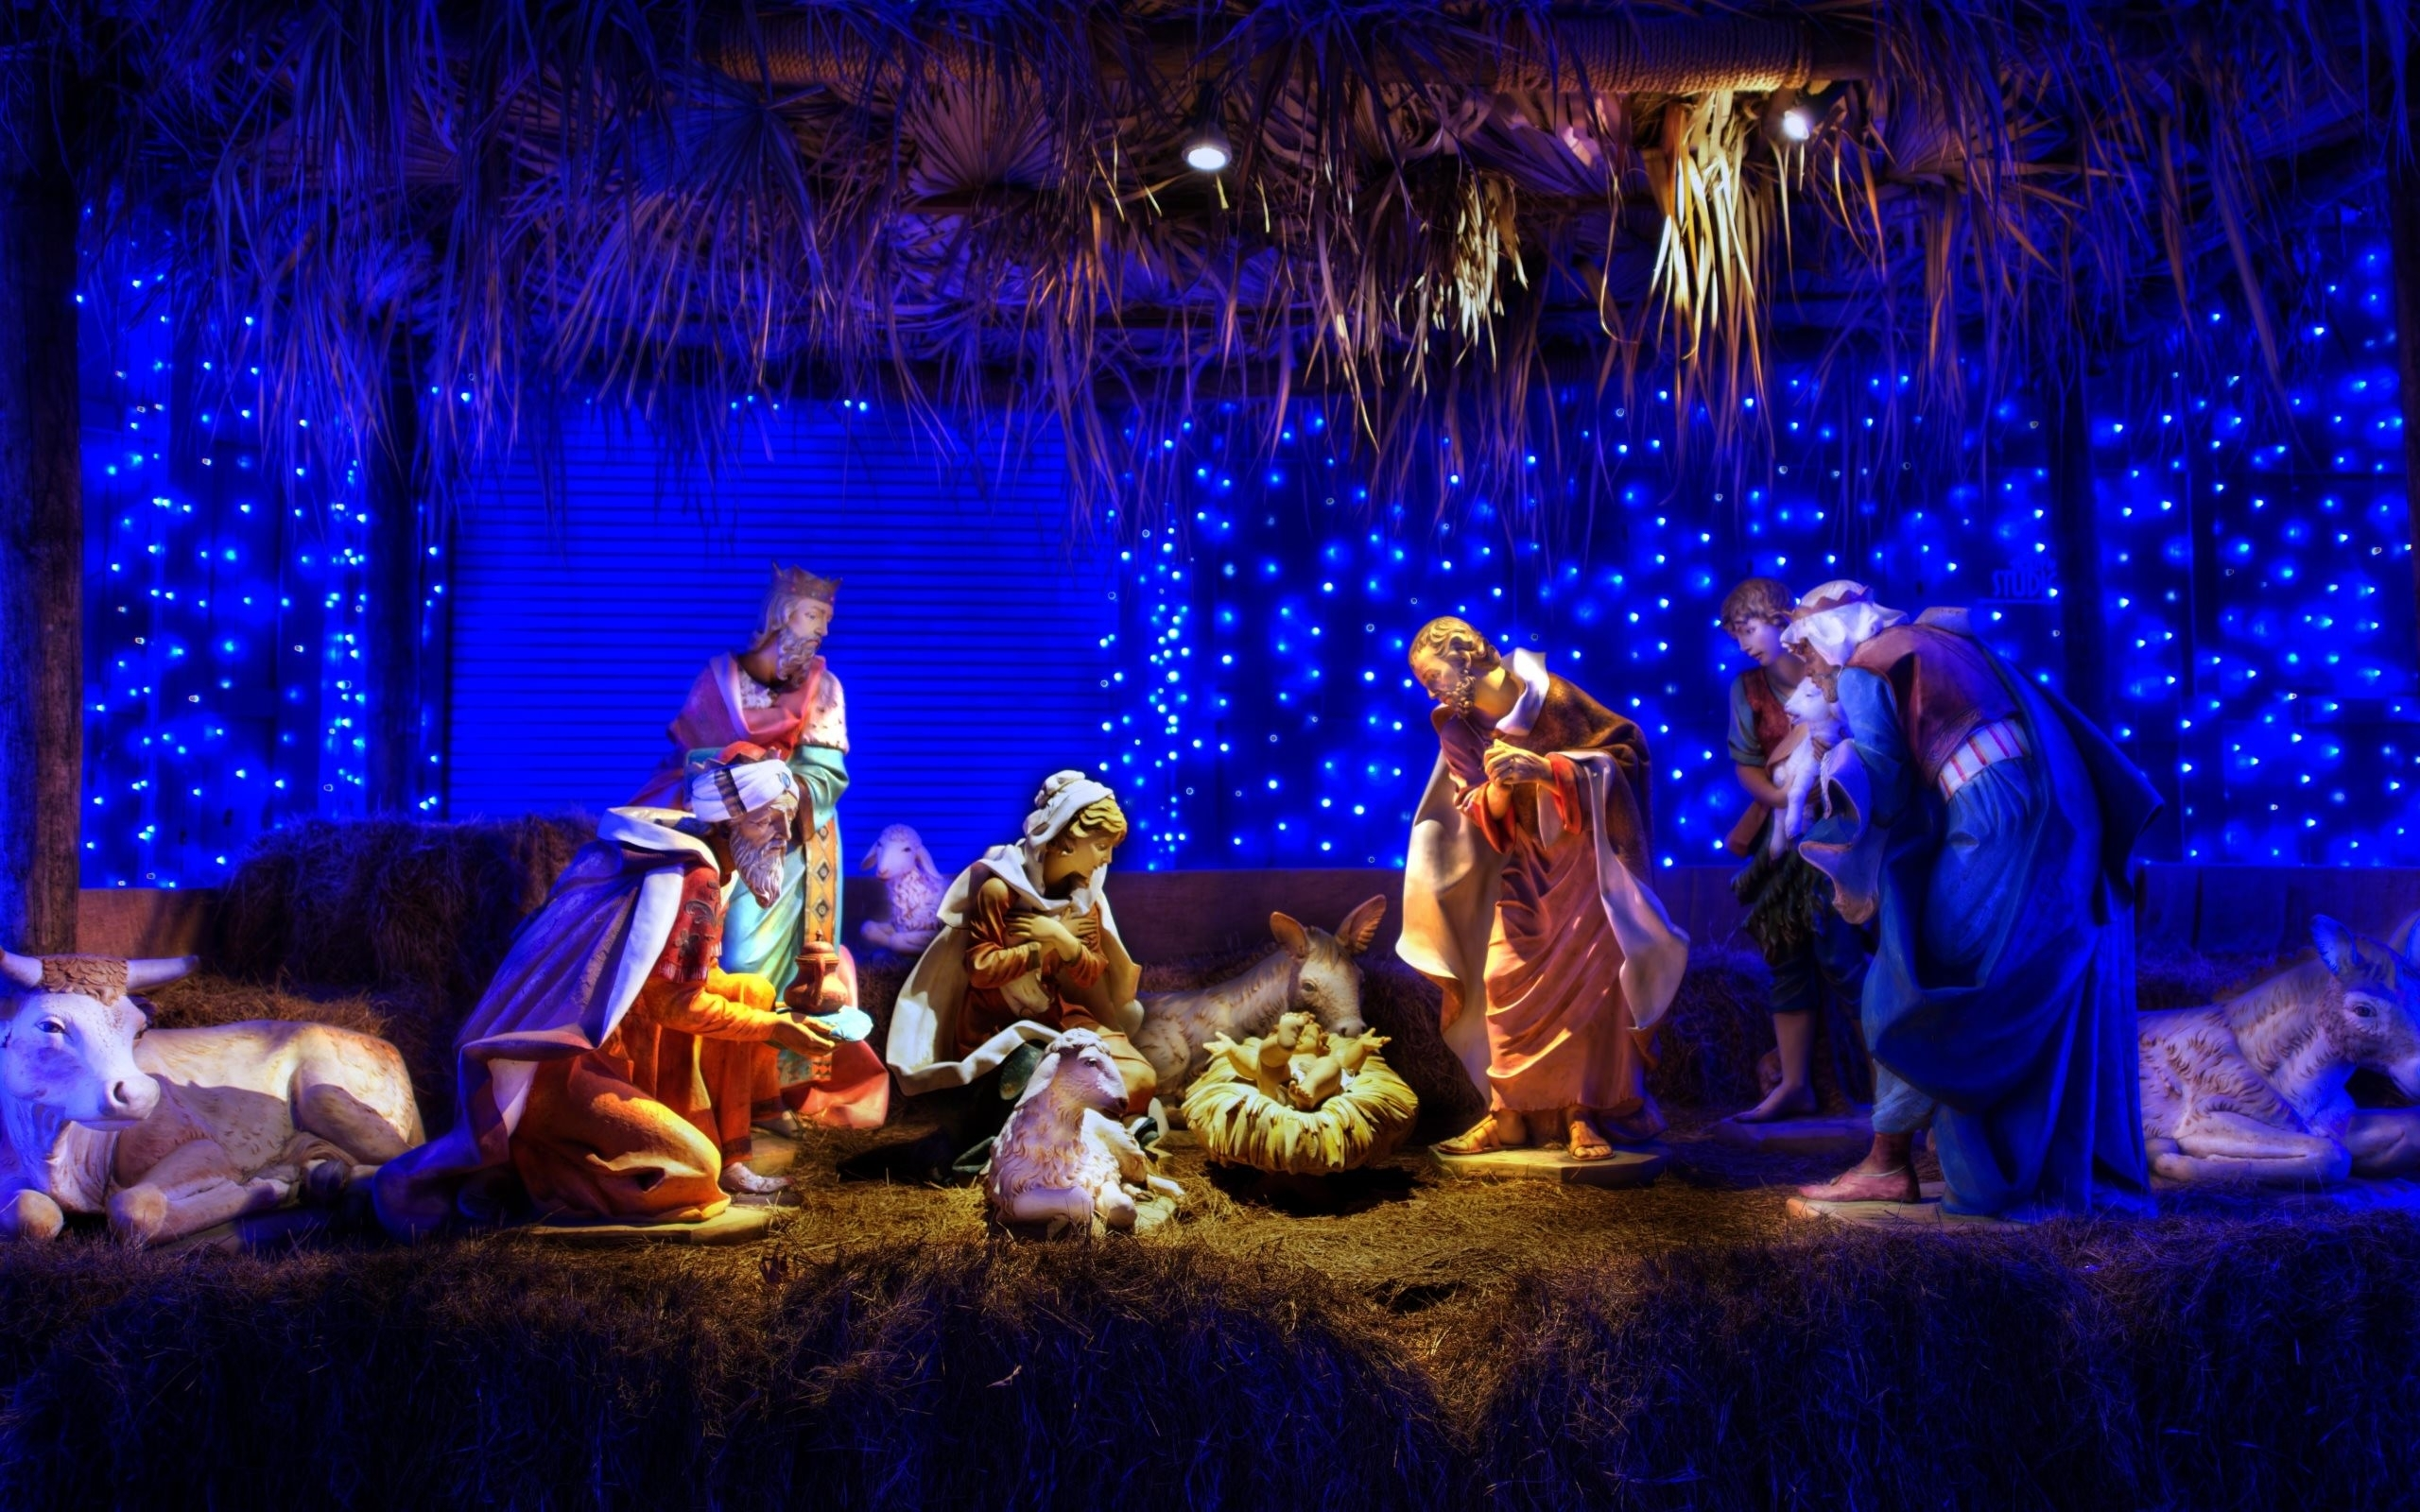 christmas nativity scene wallpaper (59+ images)